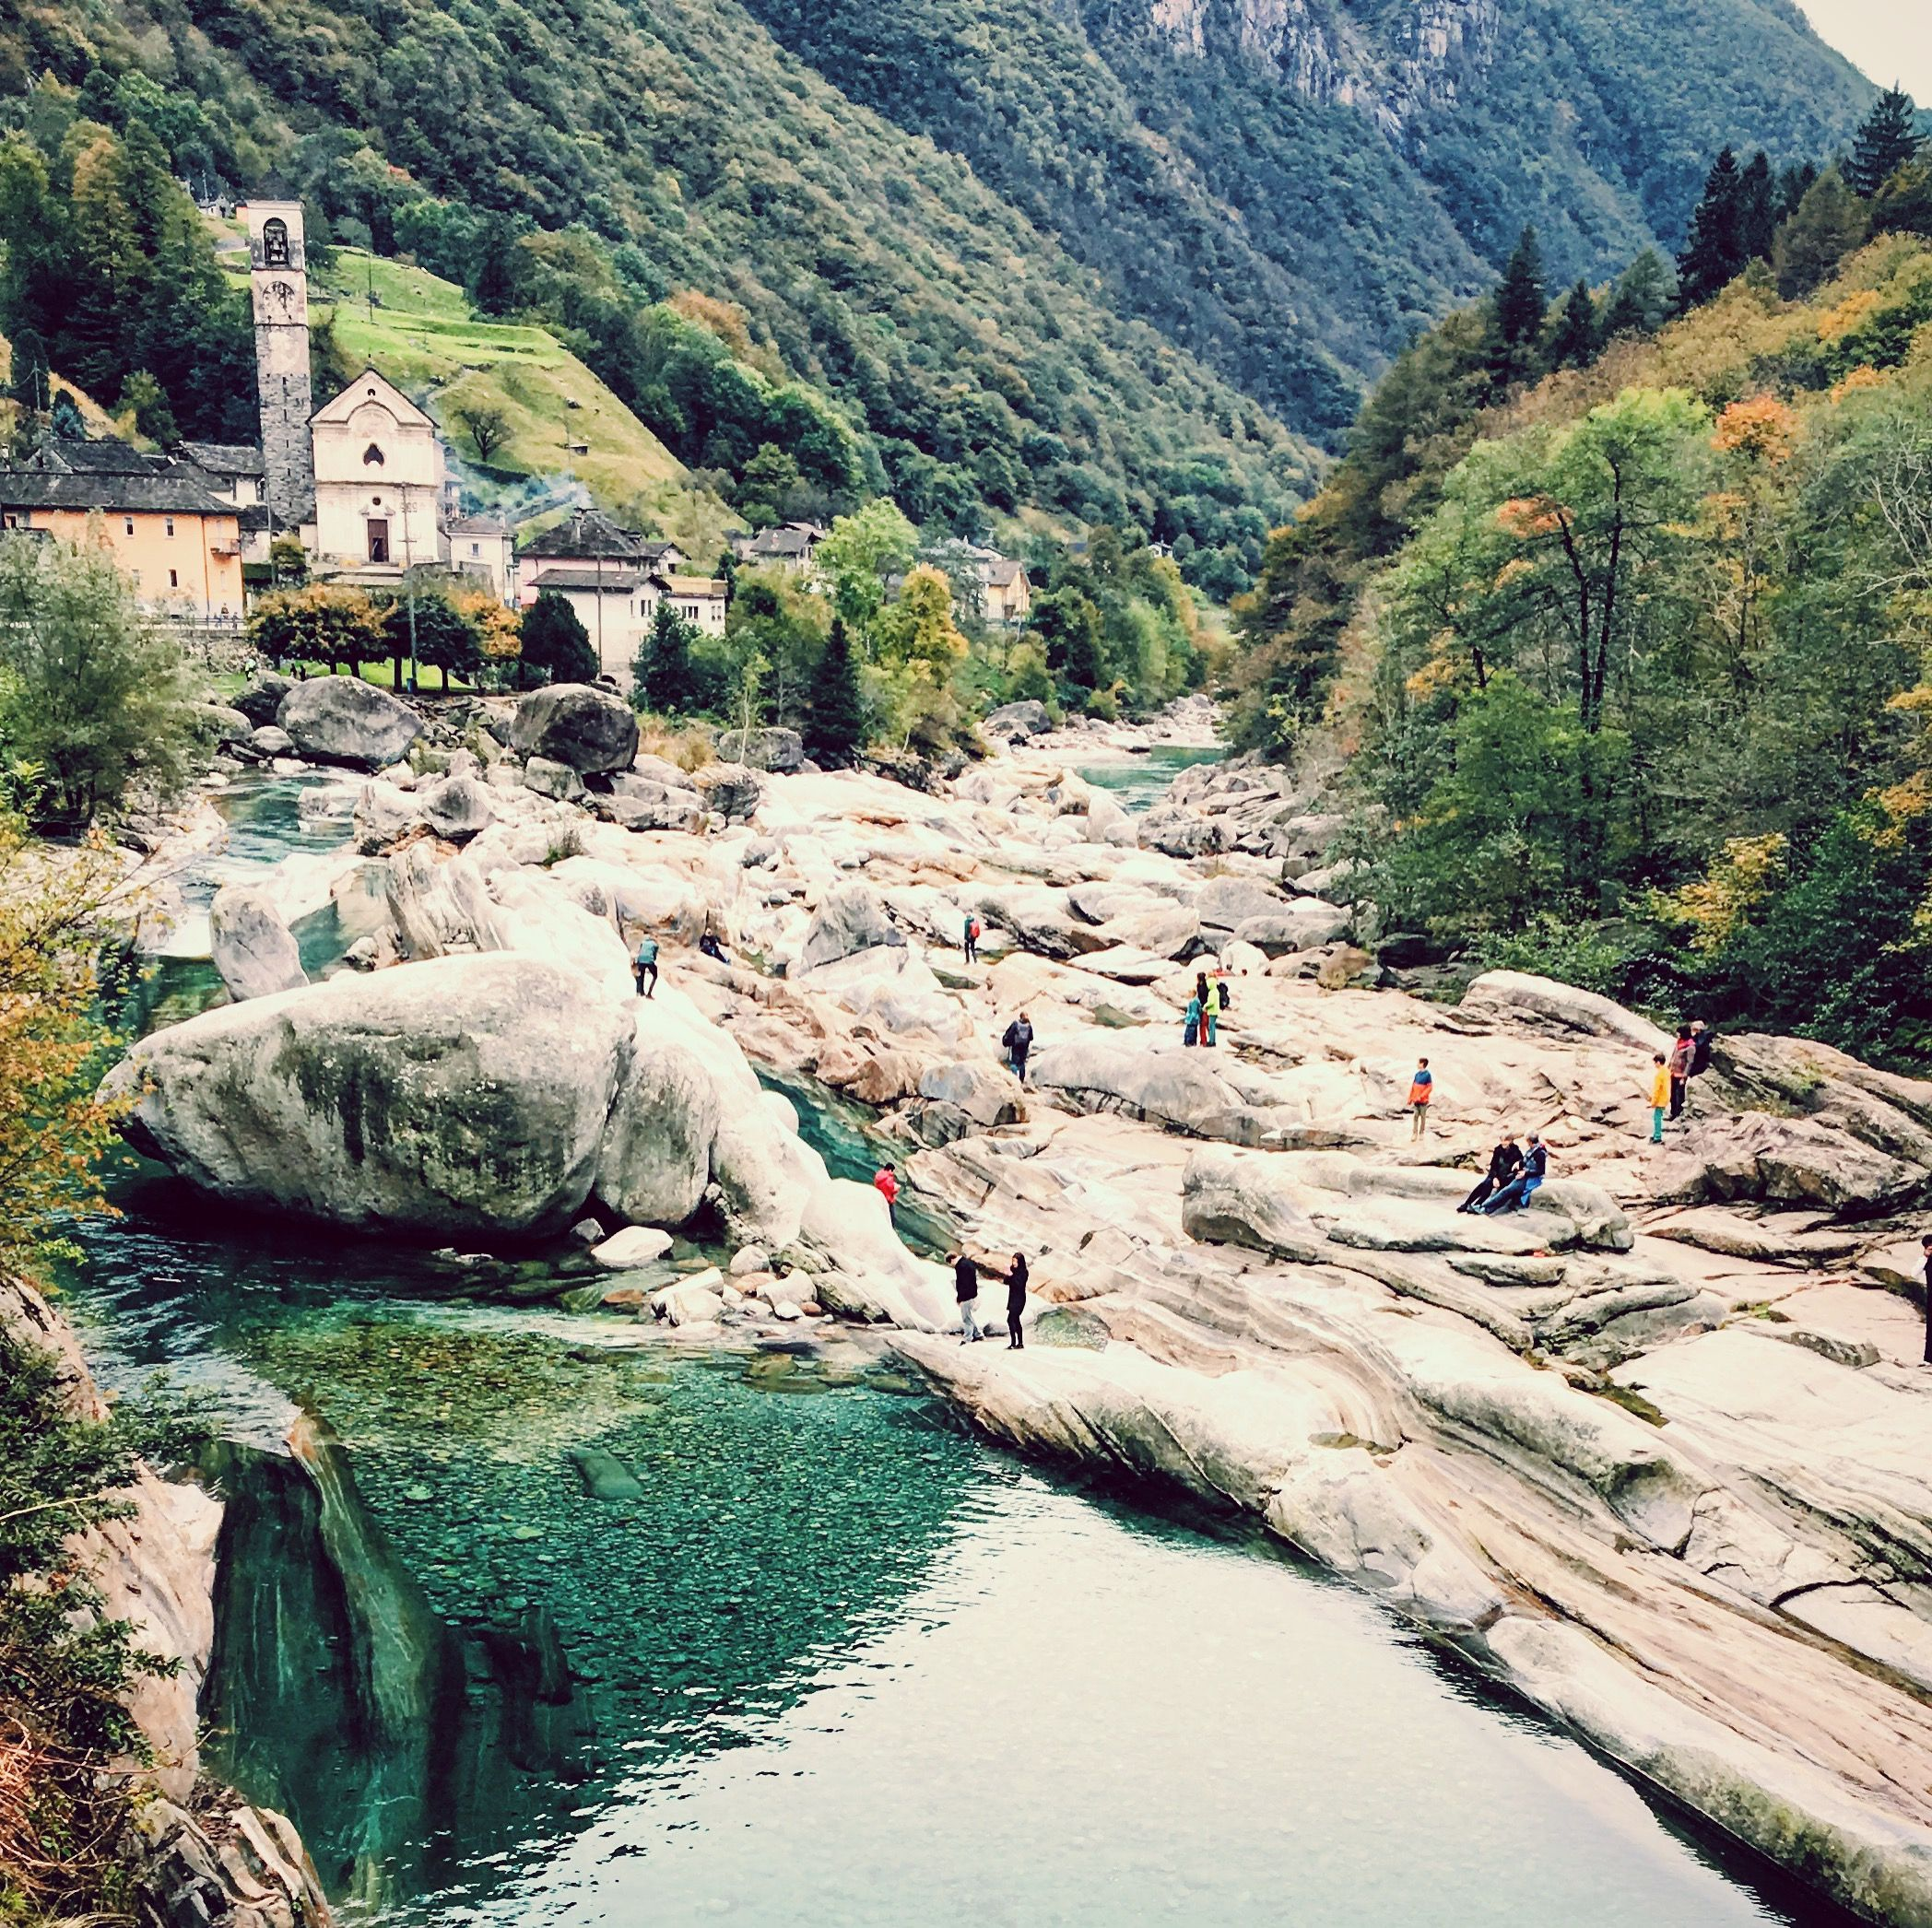 Magical Places To Stay In Europe: The Verzasca Valley Is One Of The Most Magical Places In